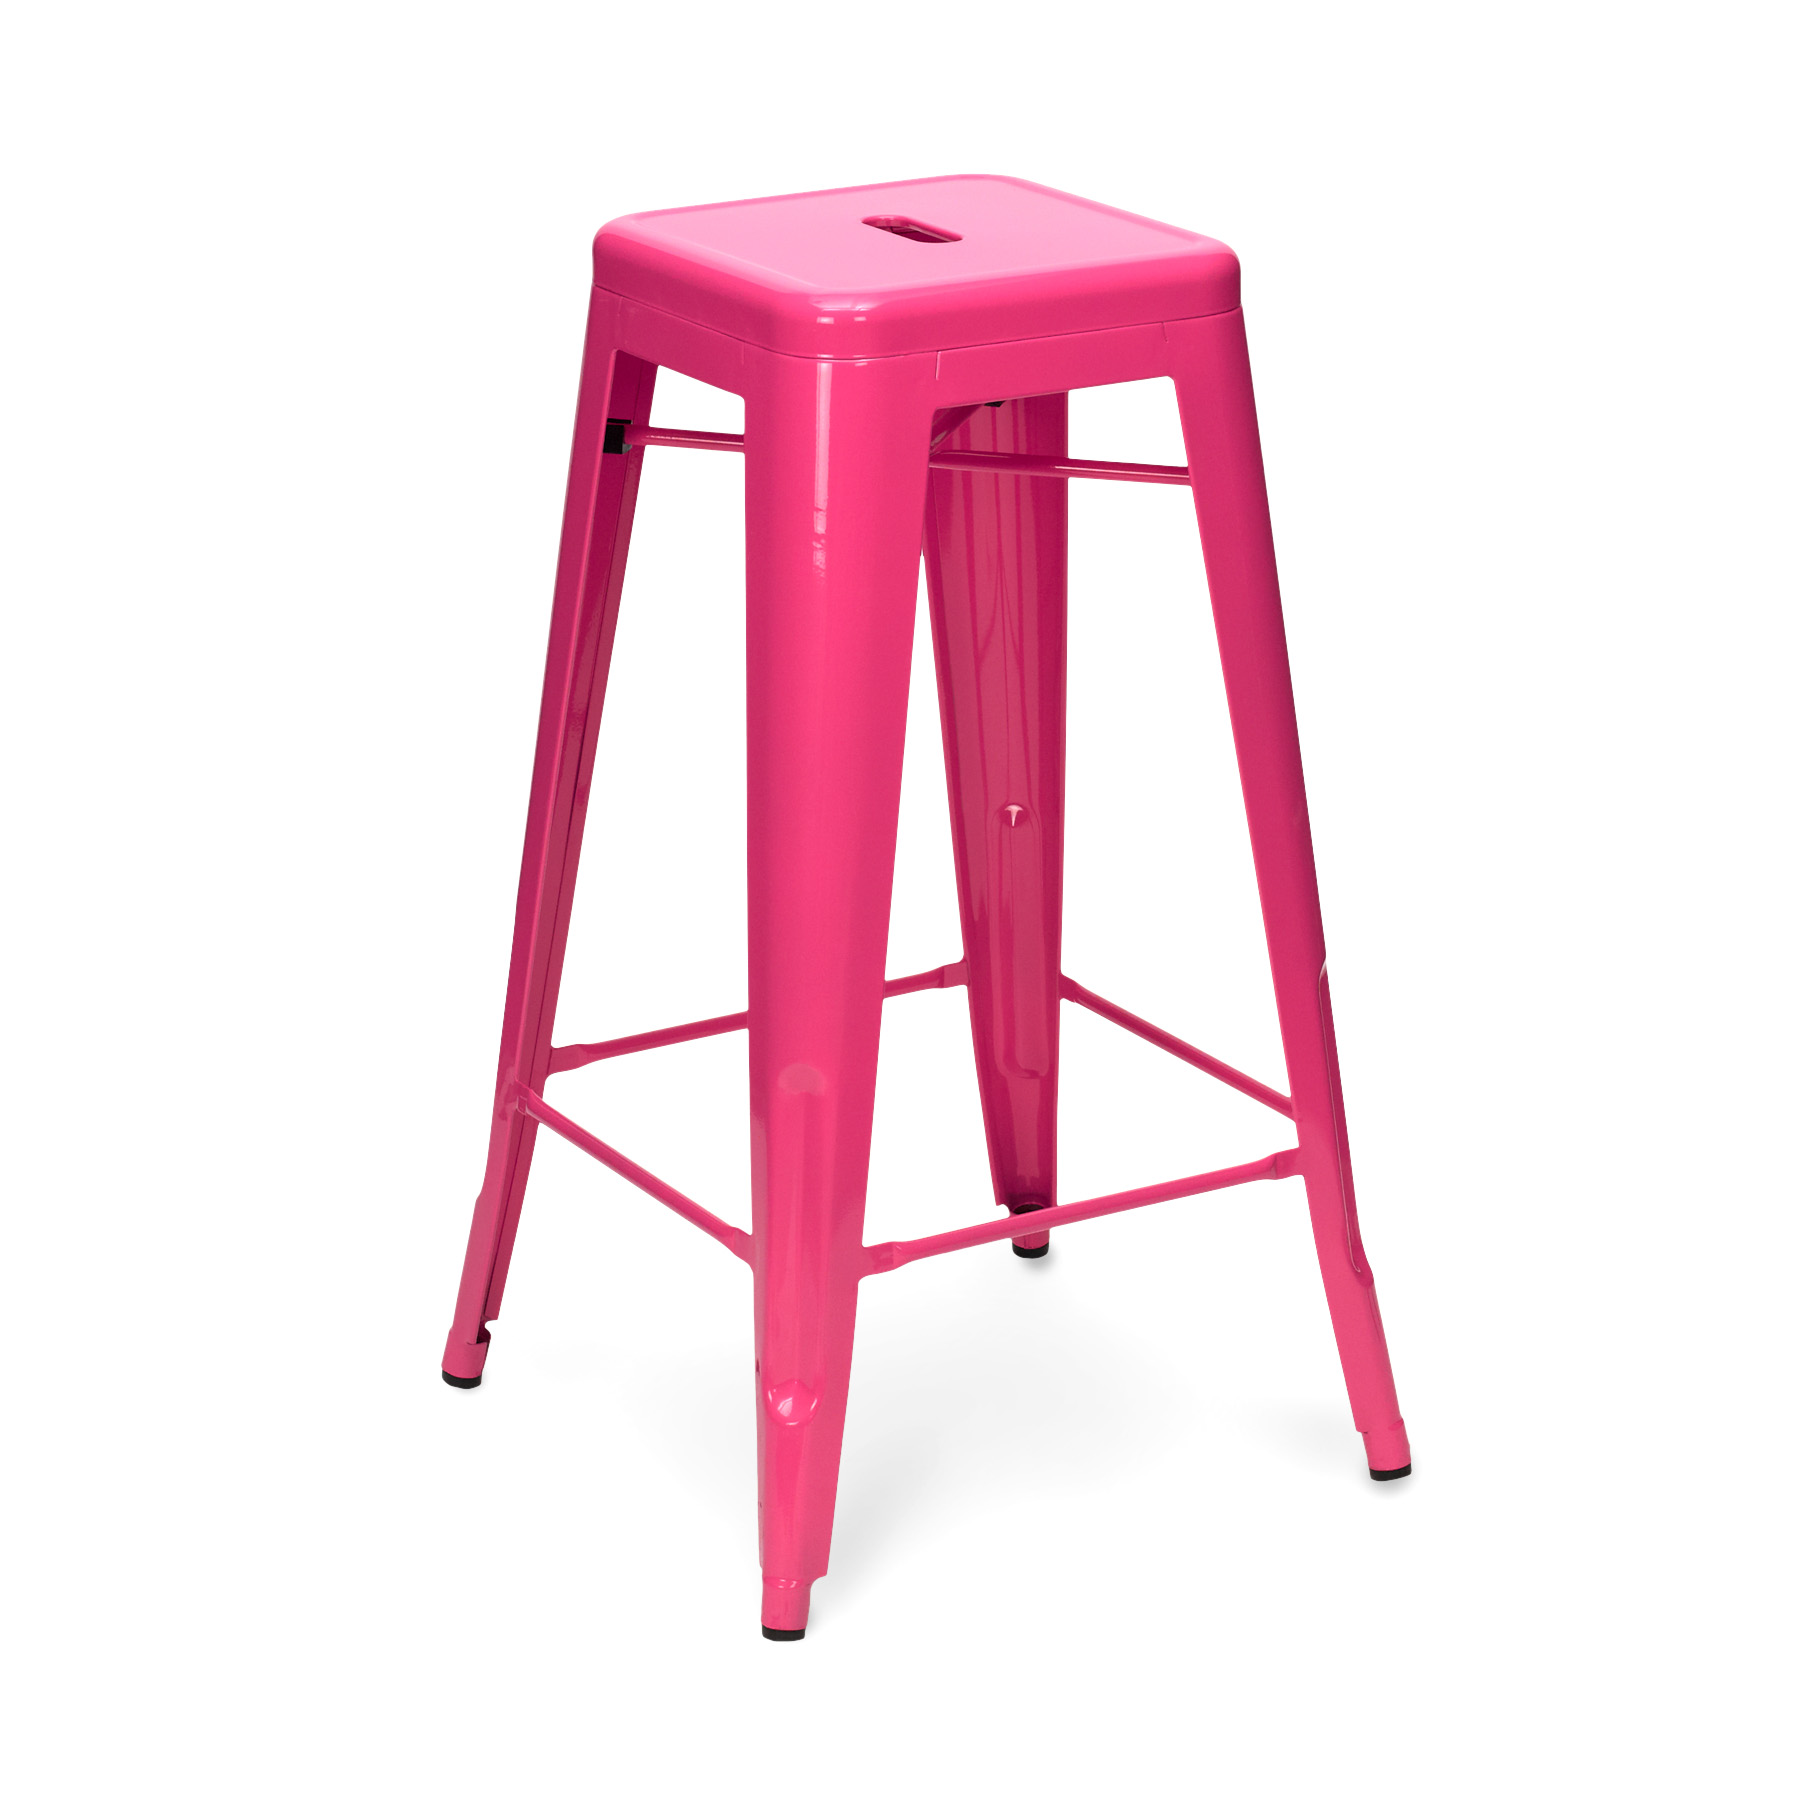 pink stool chair little girls table and chairs tolix 65cm 75cm